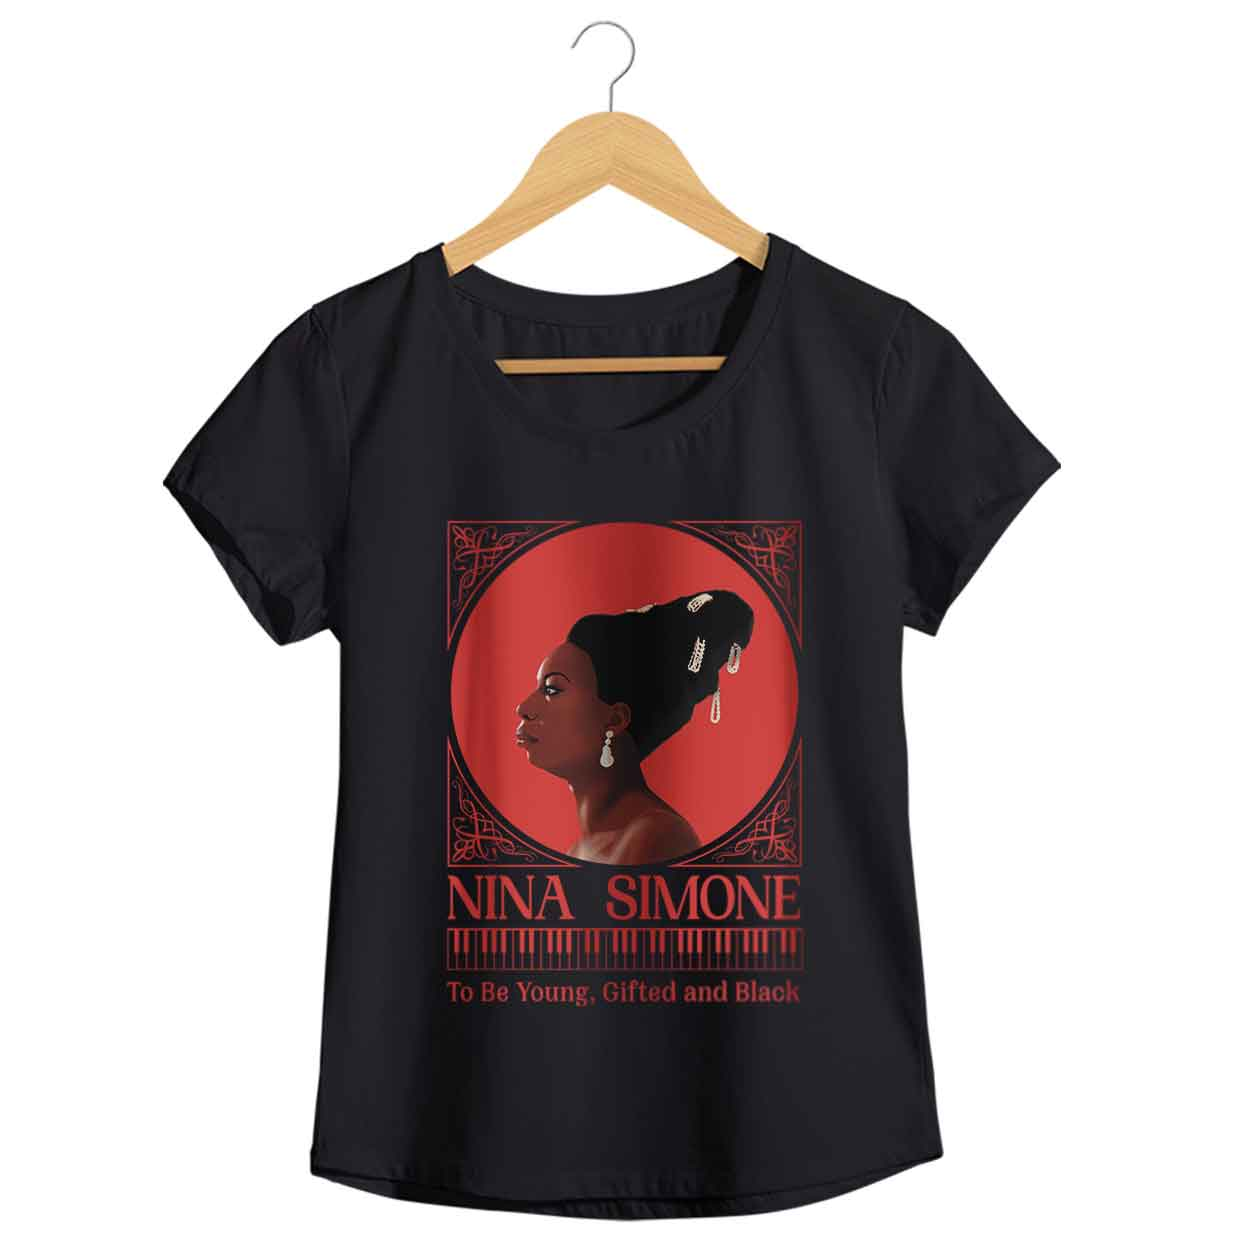 Camiseta - To Be Young, Gifted And Black - Nina Simone - Feminino